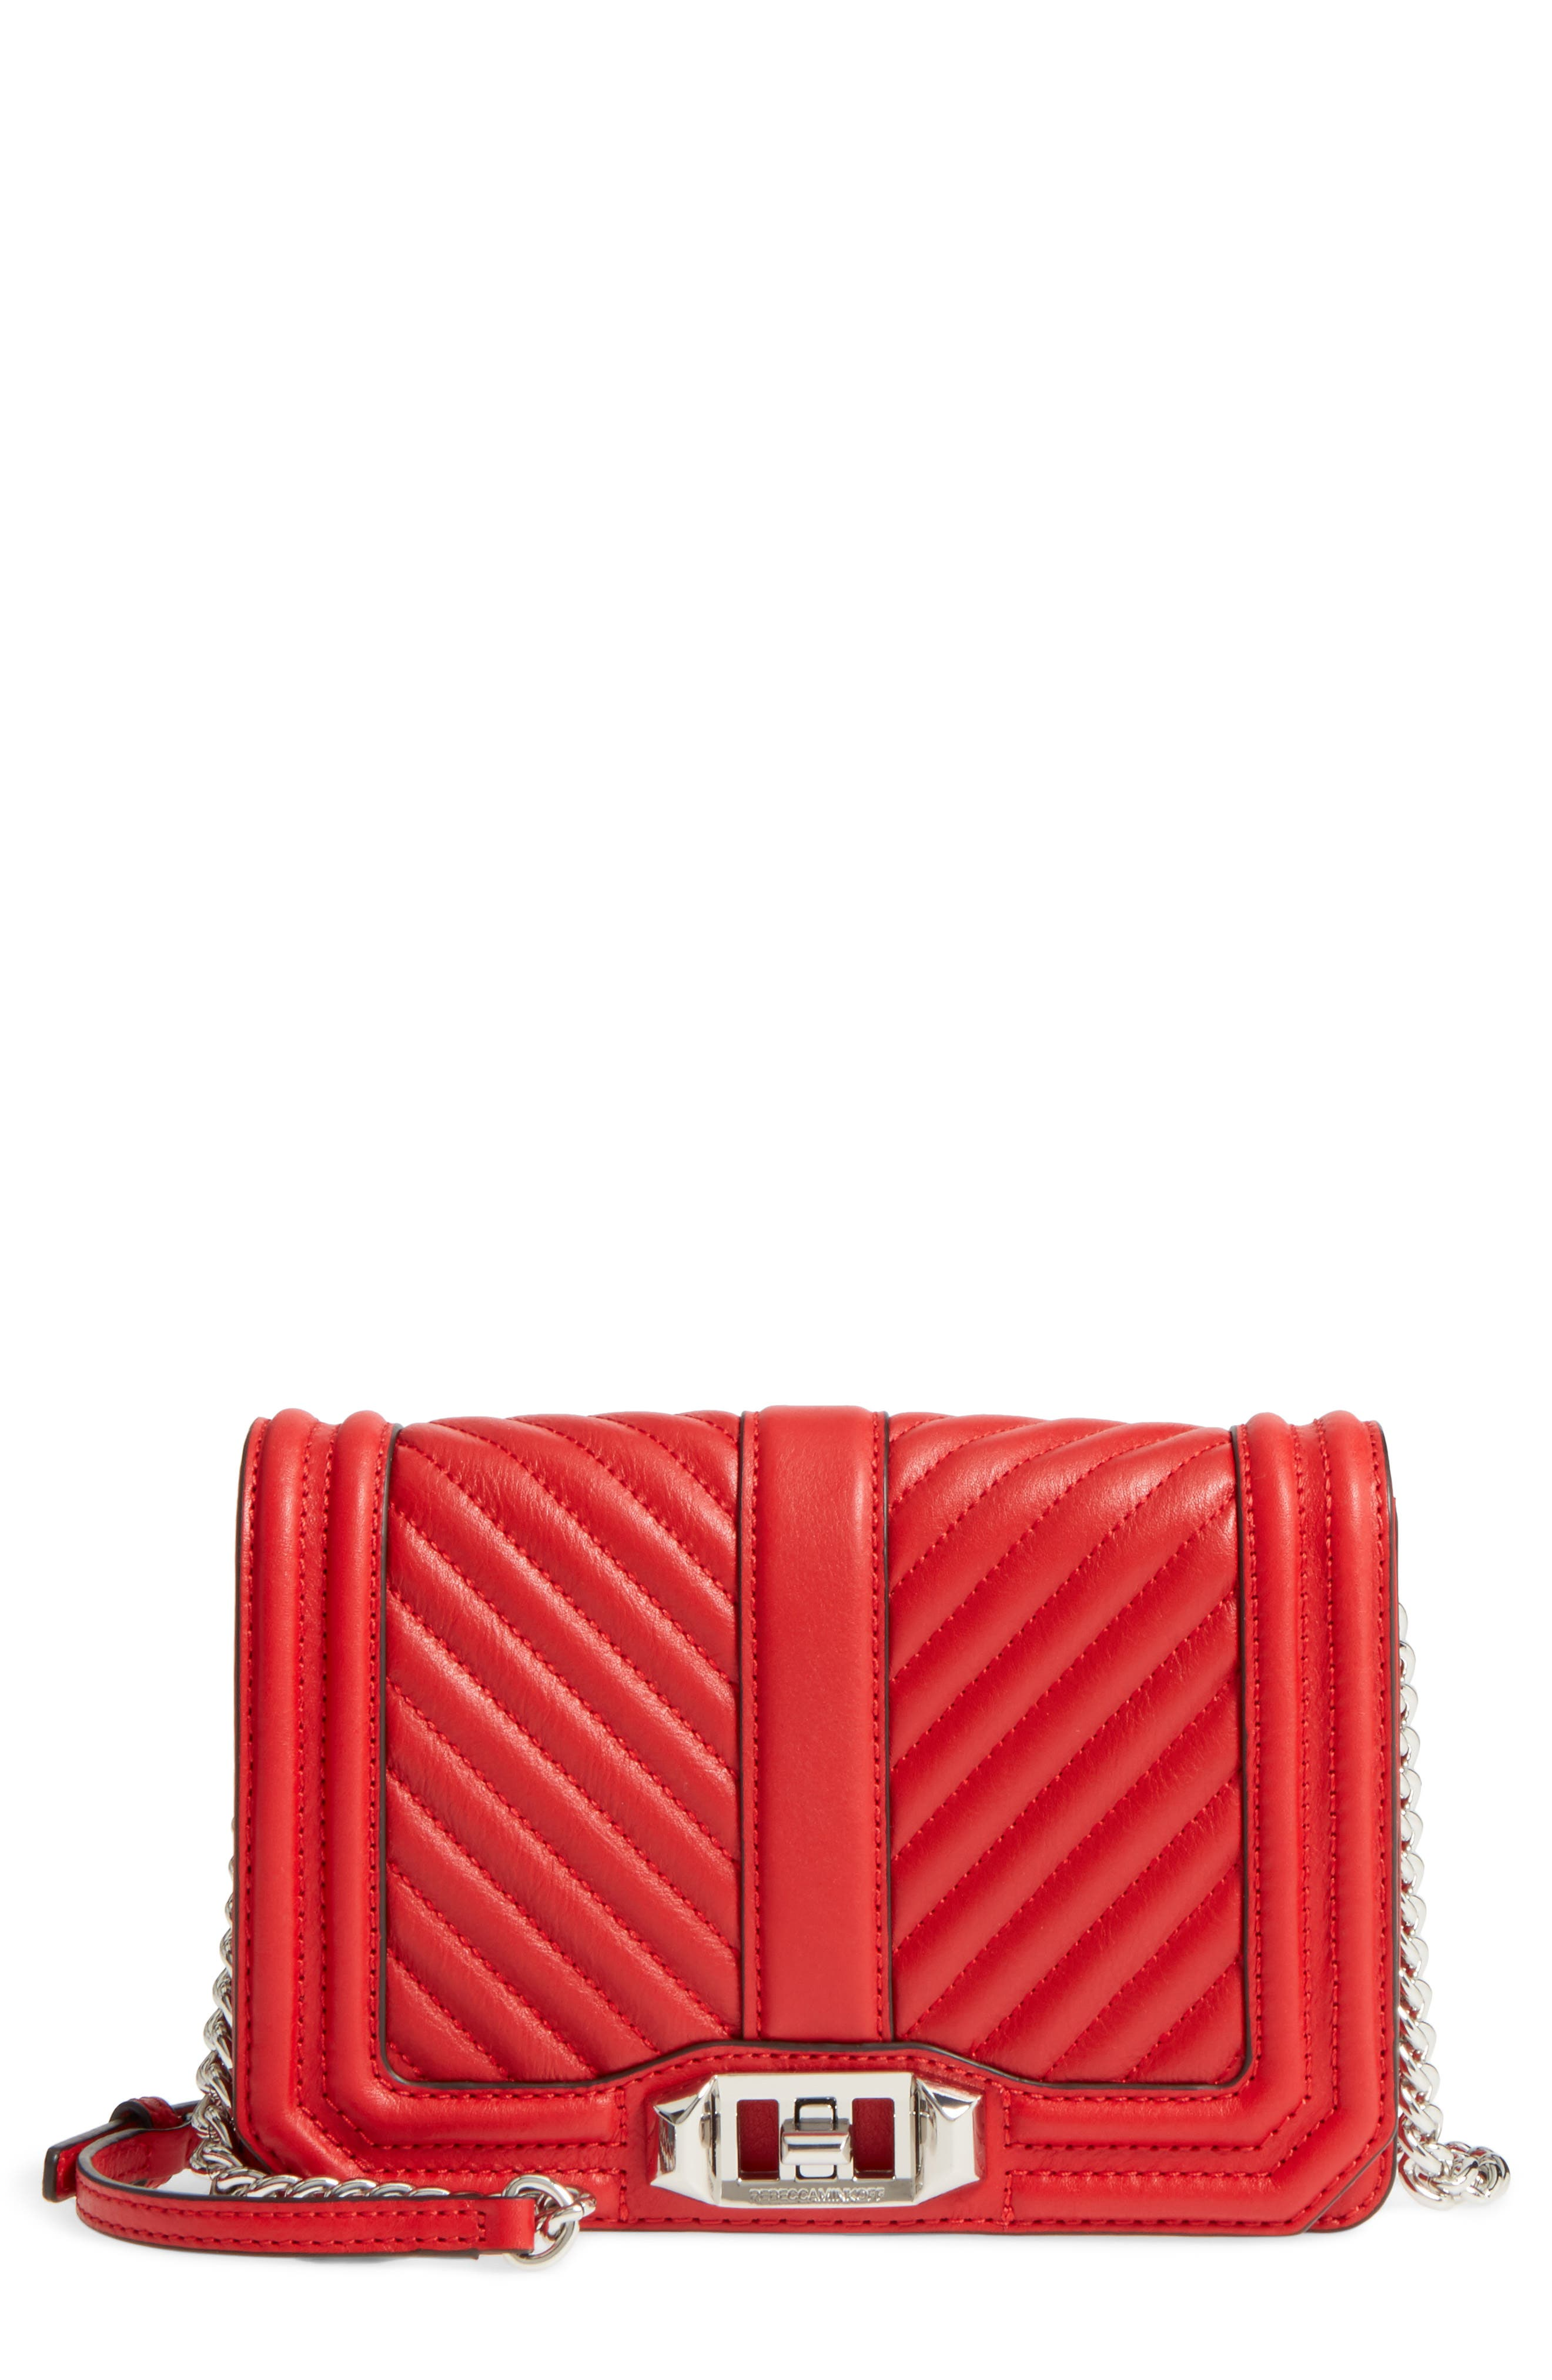 Main Image - Rebecca Minkoff Small Love Quilted Leather Crossbody Bag